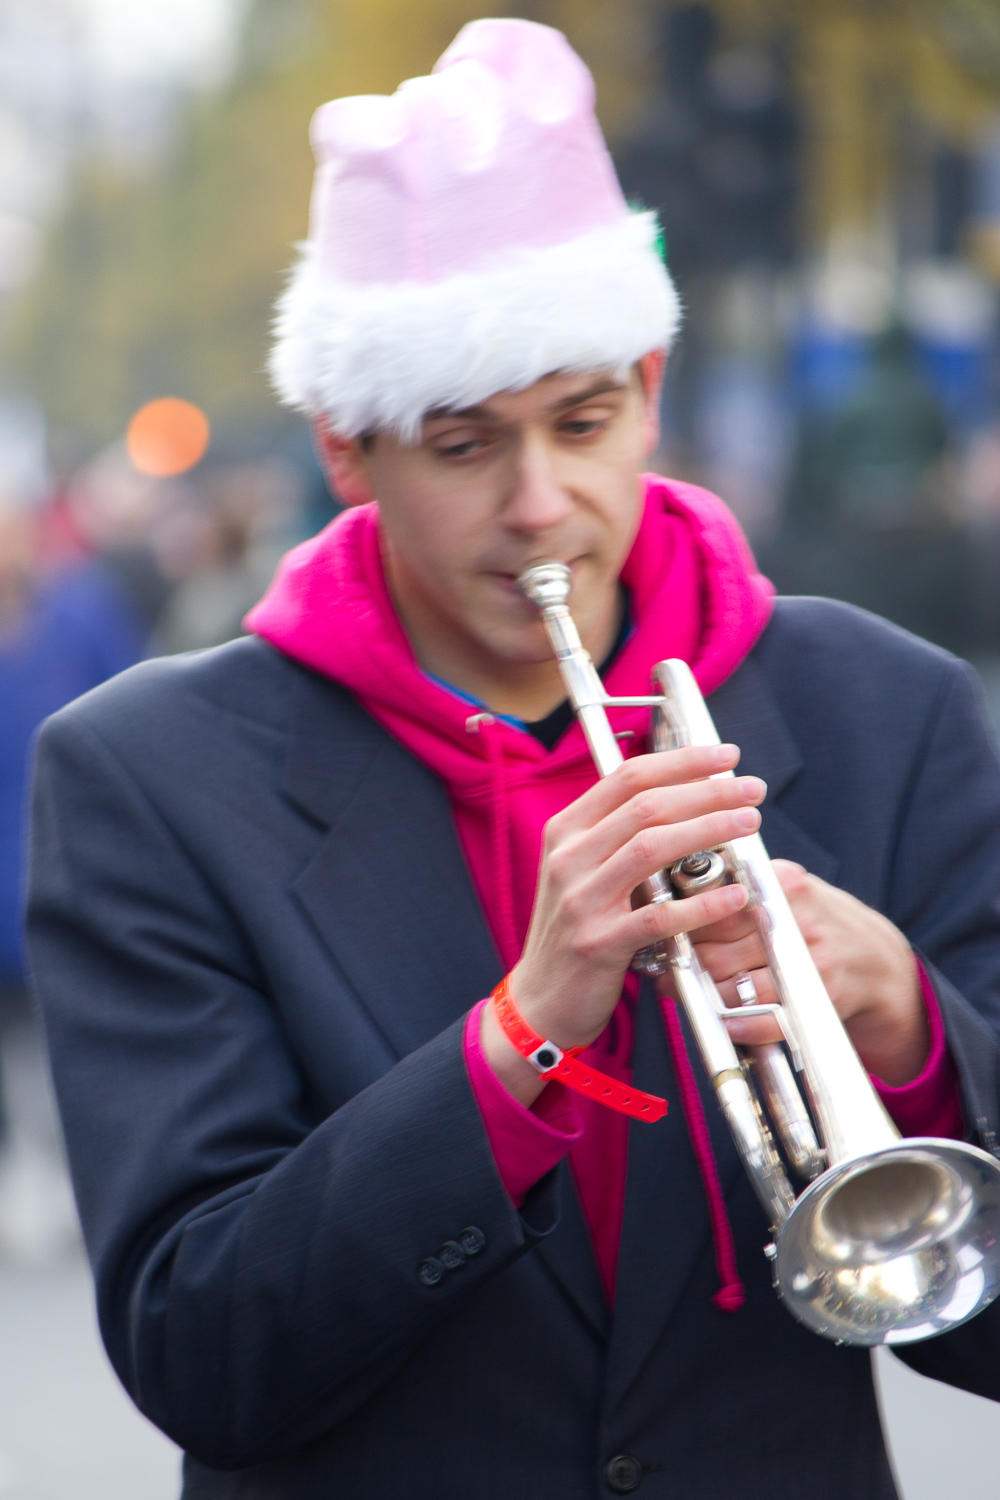 blurry trumpet player -  Travel Photography Mistakes